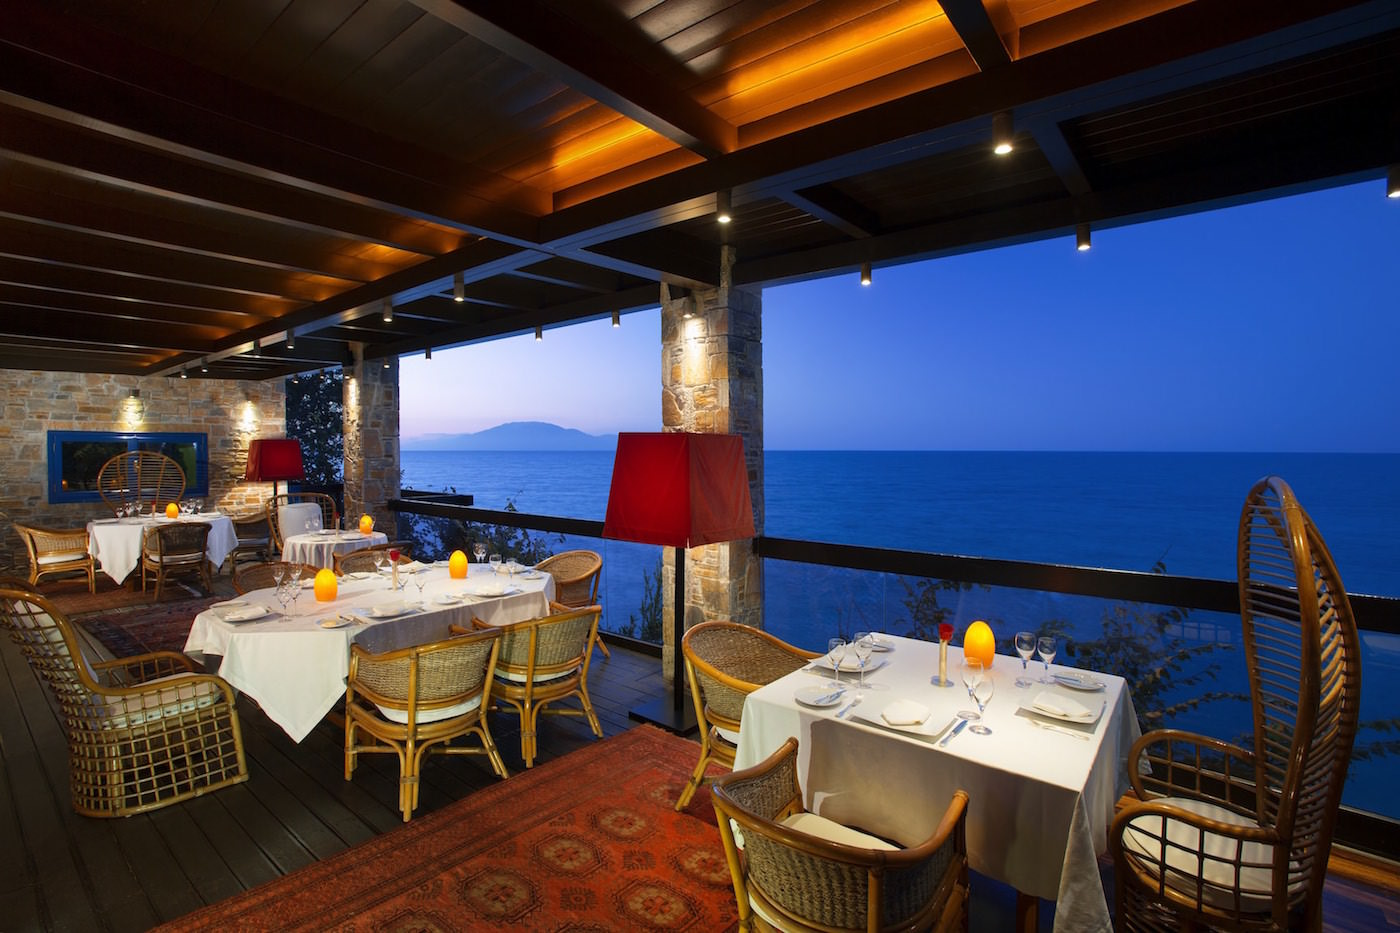 Porto Zante Best Restaurant Greece Luxury Greek Mediterranean food and drinks